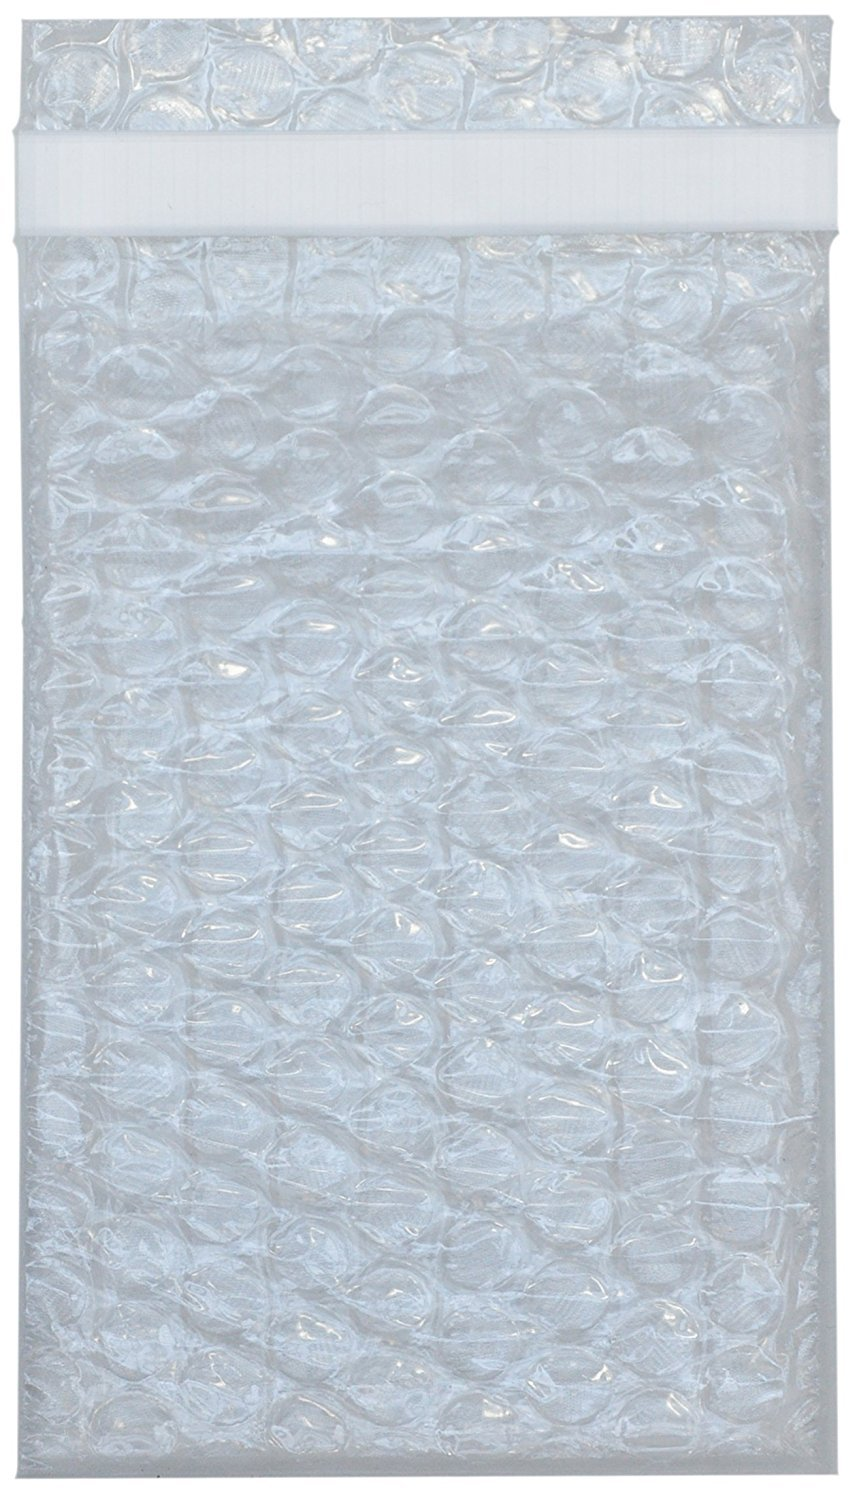 """Premier Bubble Double Walled Self-Sealing Clear Cushioning Pouch Bags - Protective Bags for Shipping, Storage, and Moving (4"""" x 6"""" - 25 count)"""